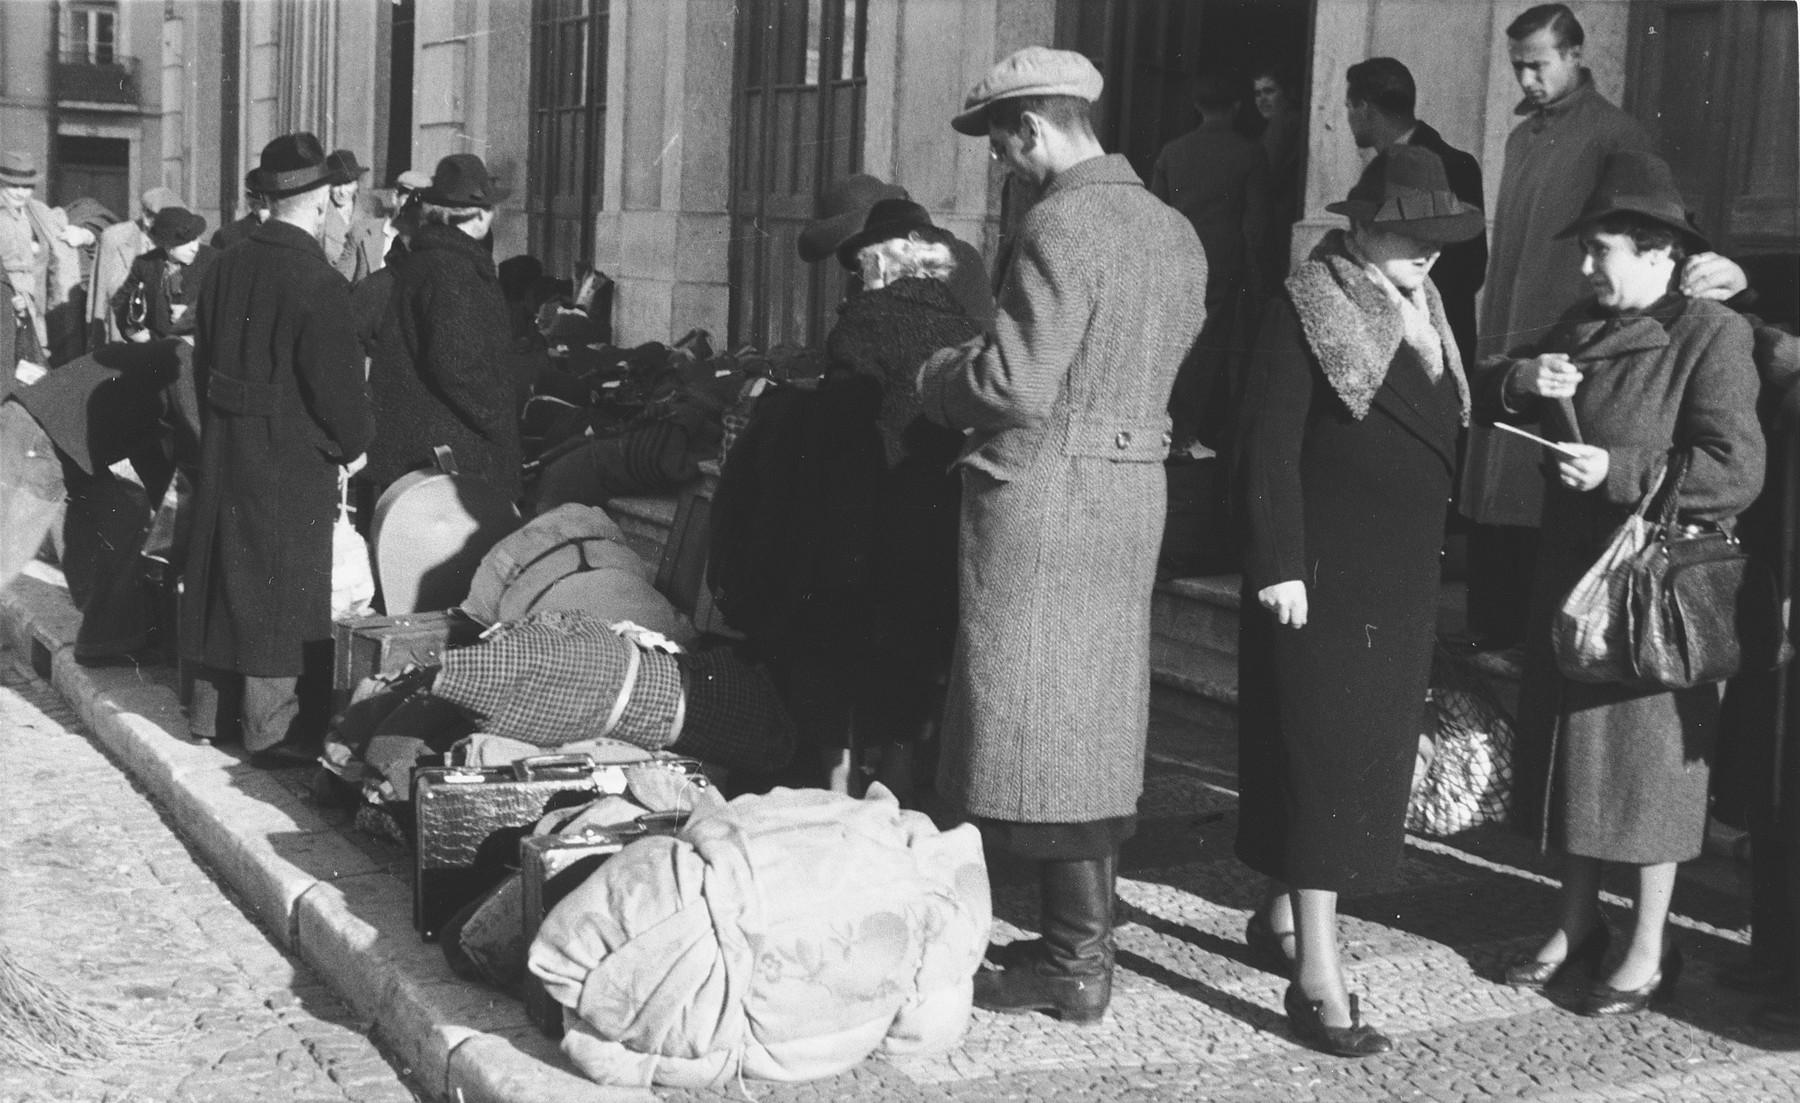 A group of Jewish refugees who have just arrived in Lisbon wait with their luggage in front of the St. Appolonia train station.